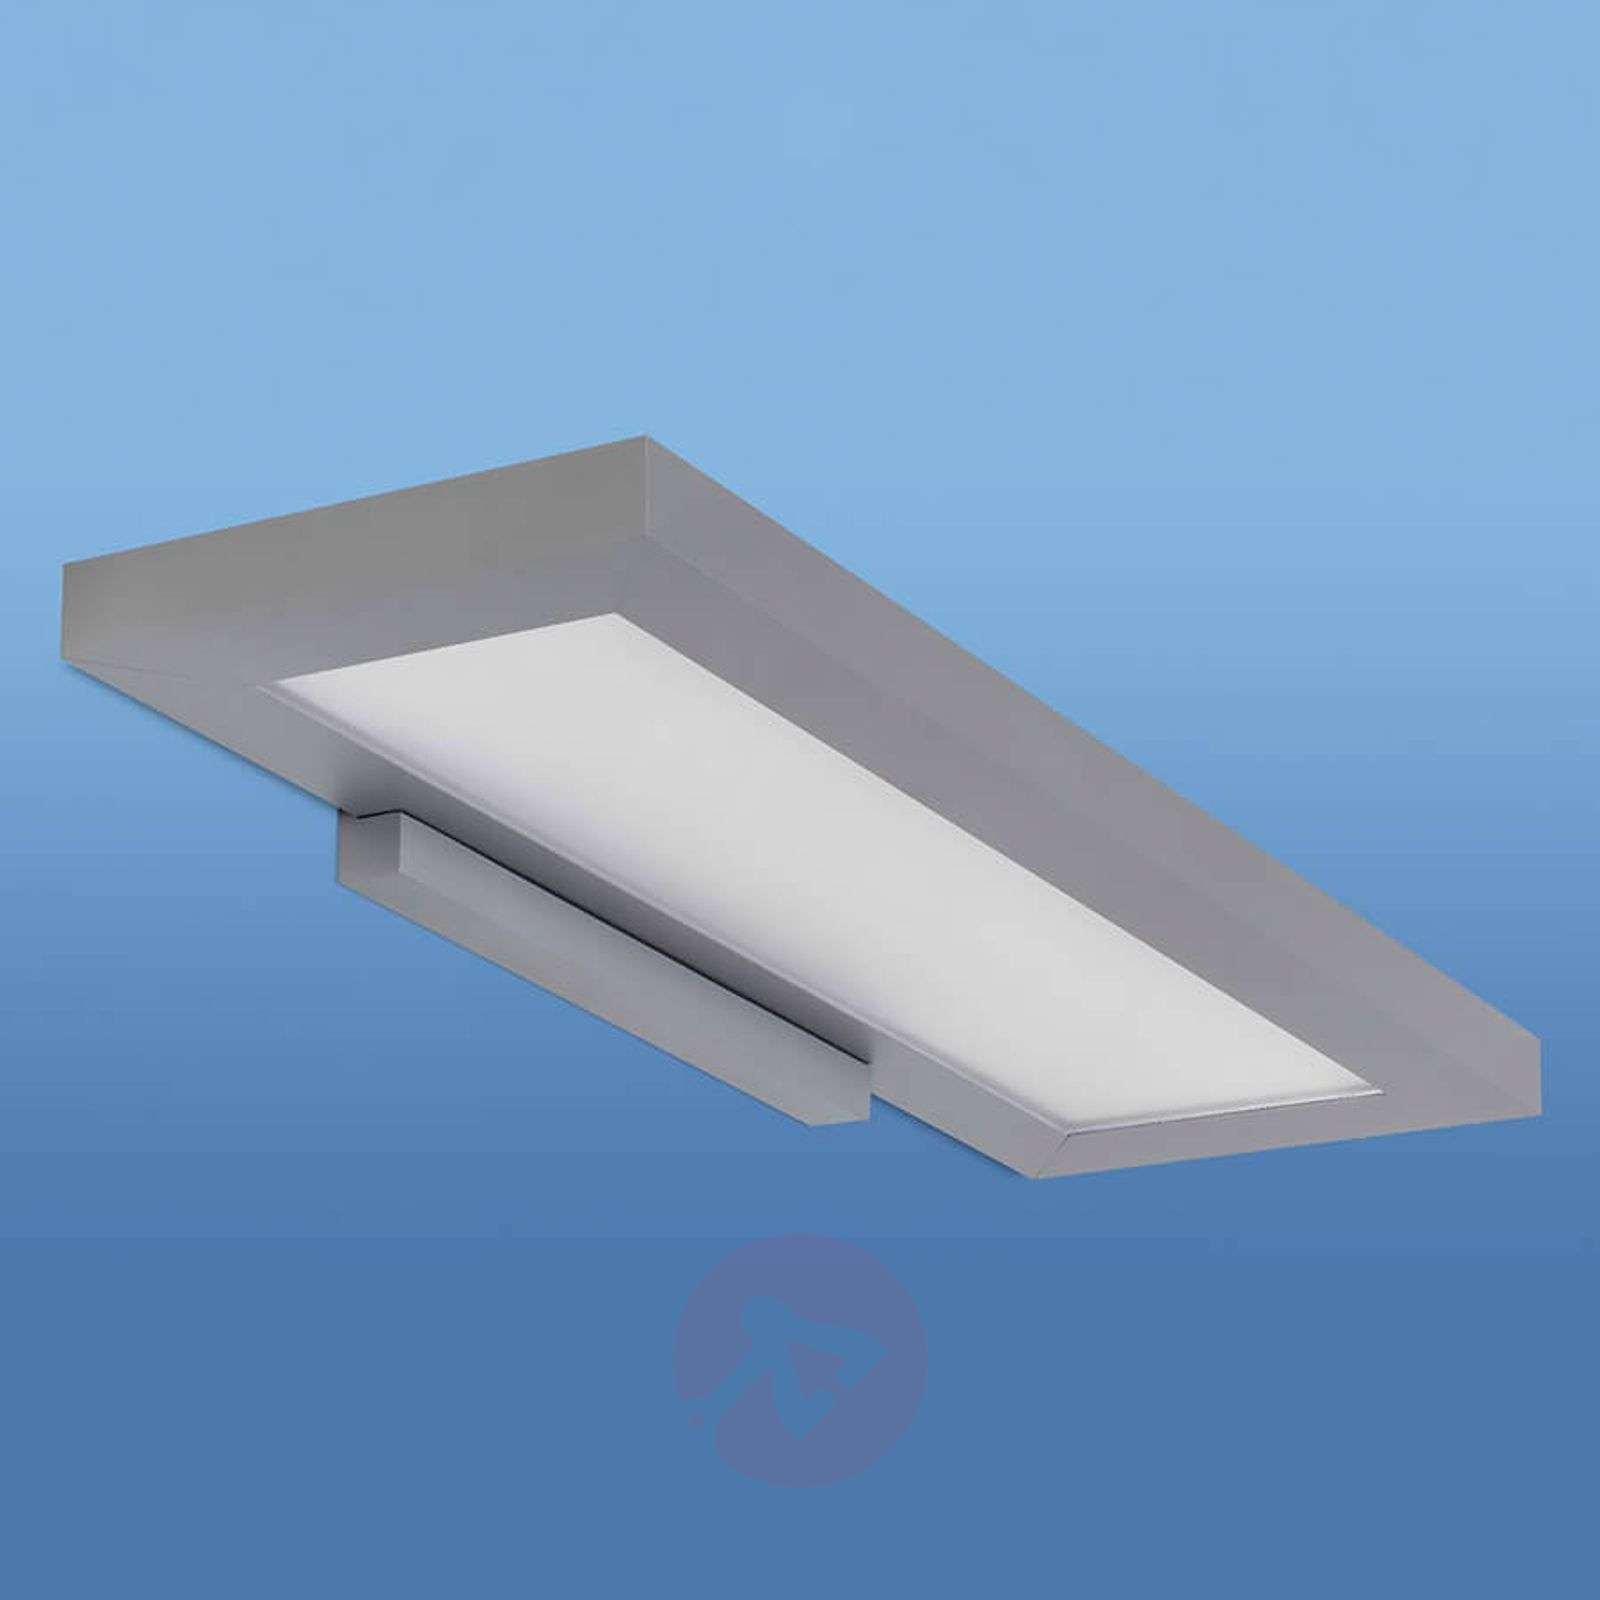 Acquista cwp applique a led per lufficio e non solo lampade.it